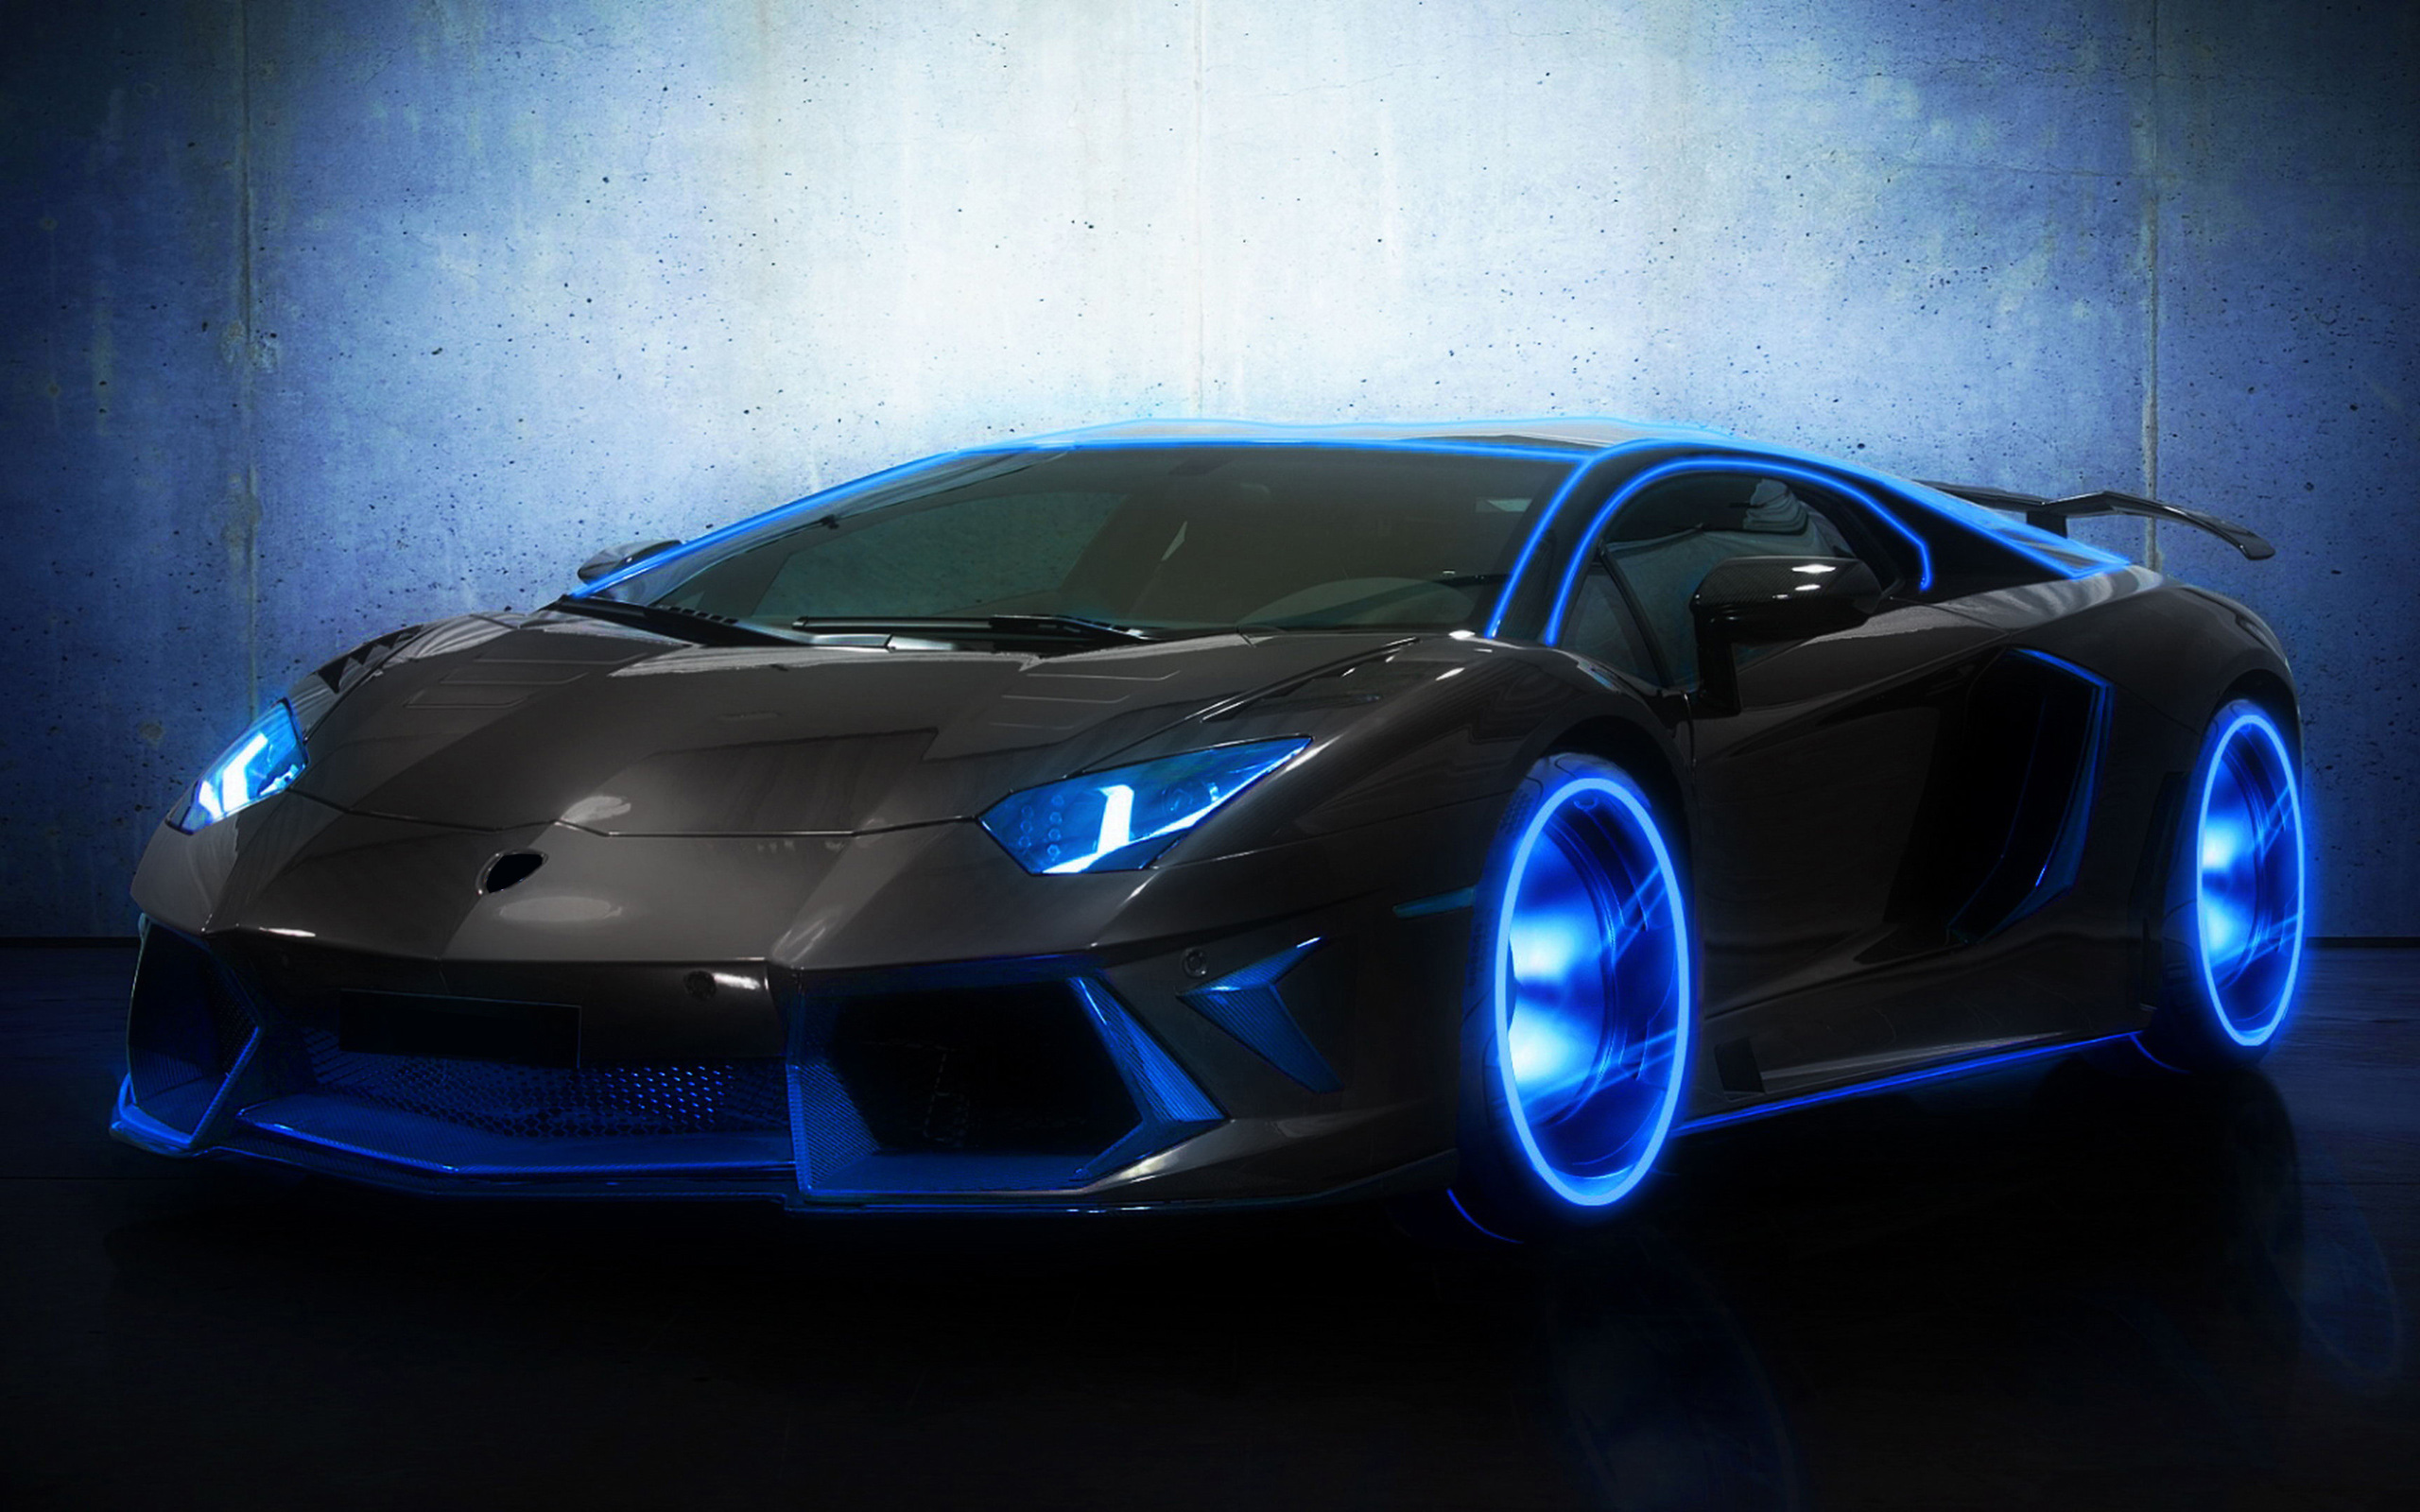 Lamborghini Aventador Bluelamborghini Aventador Black And Blue